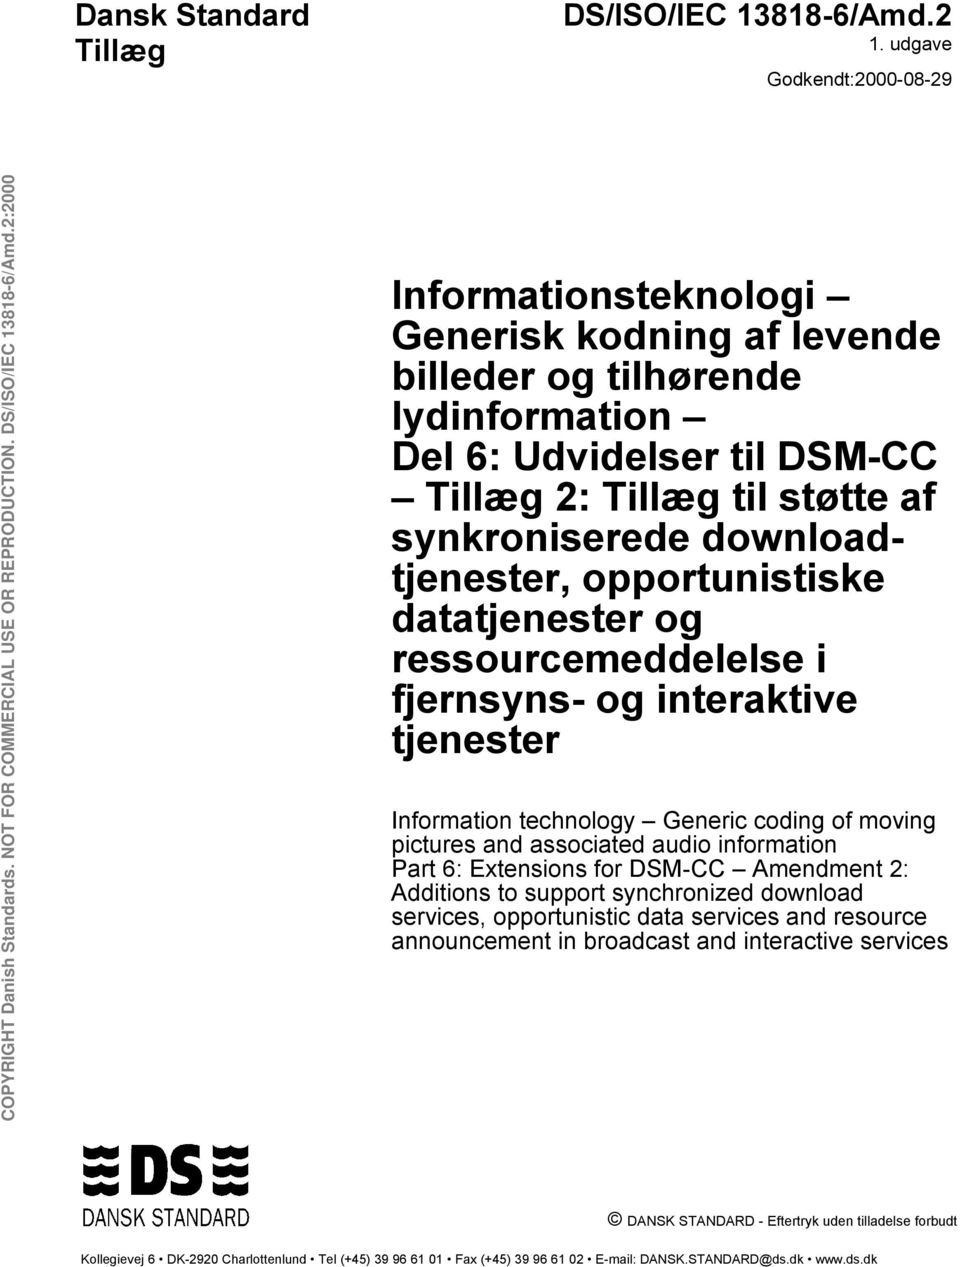 downloadtjenester, opportunistiske datatjenester og ressourcemeddelelse i fjernsyns- og interaktive tjenester Information technology Generic coding of moving pictures and associated audio information